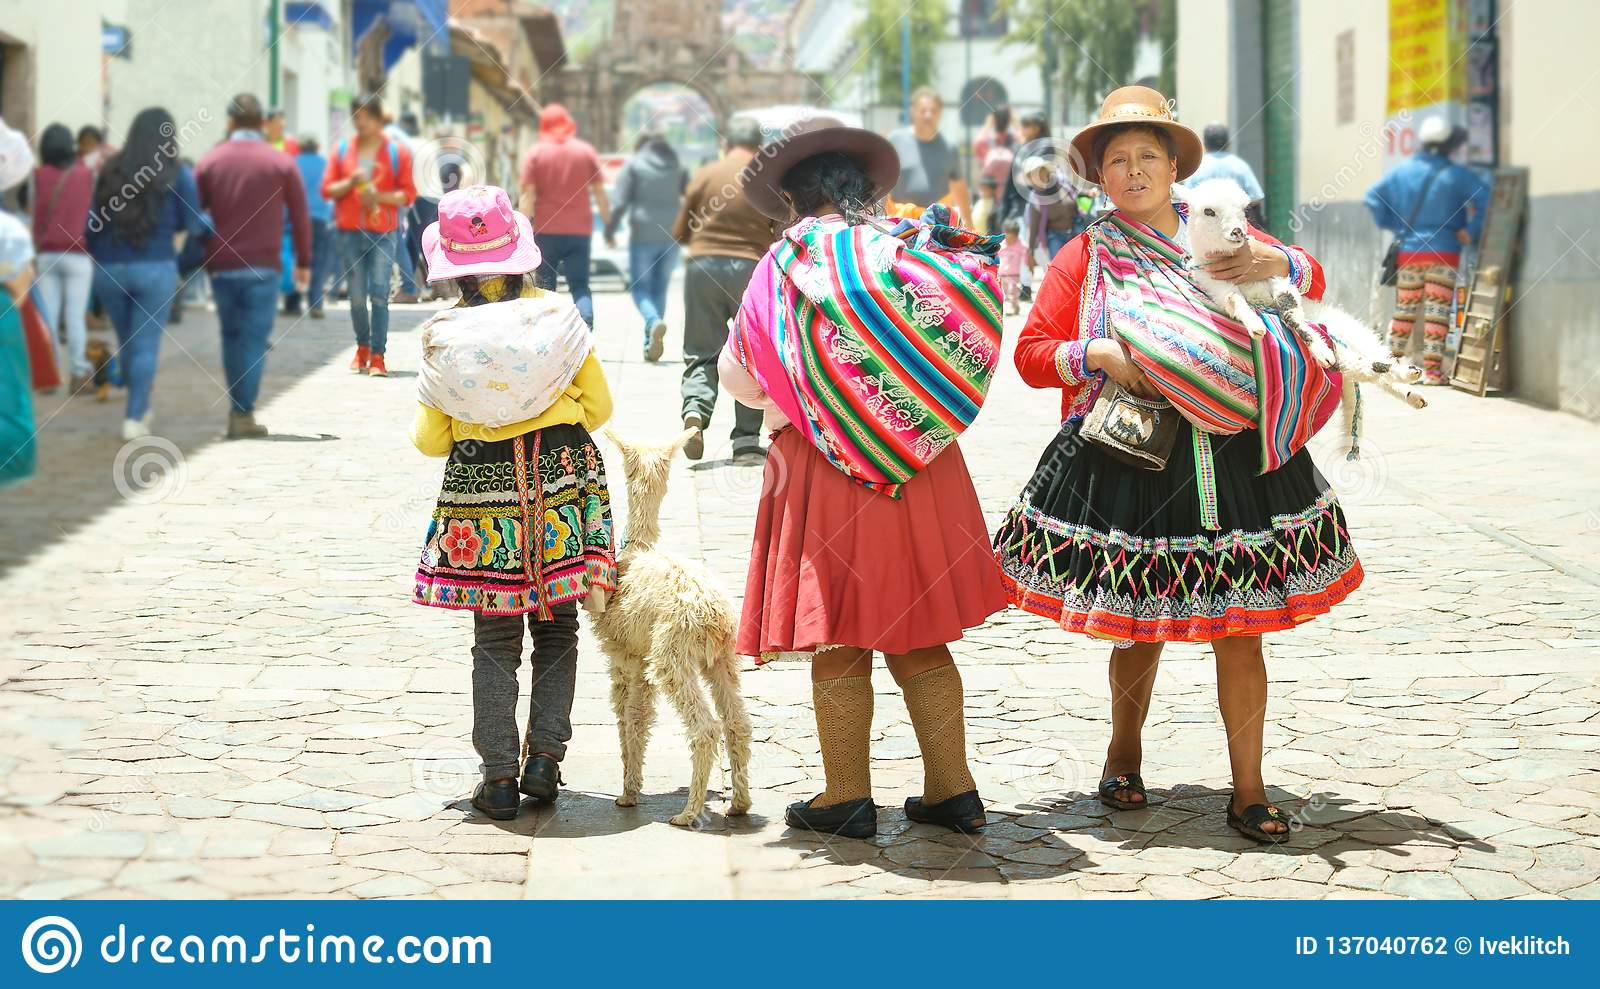 Cusco Peru 01 03 2019 Peruvian Women And Girl In Traditional Dresses And Small Llama On The Street Of Cusco Peru Editorial Photography Image Of Destination Landscape 137040762